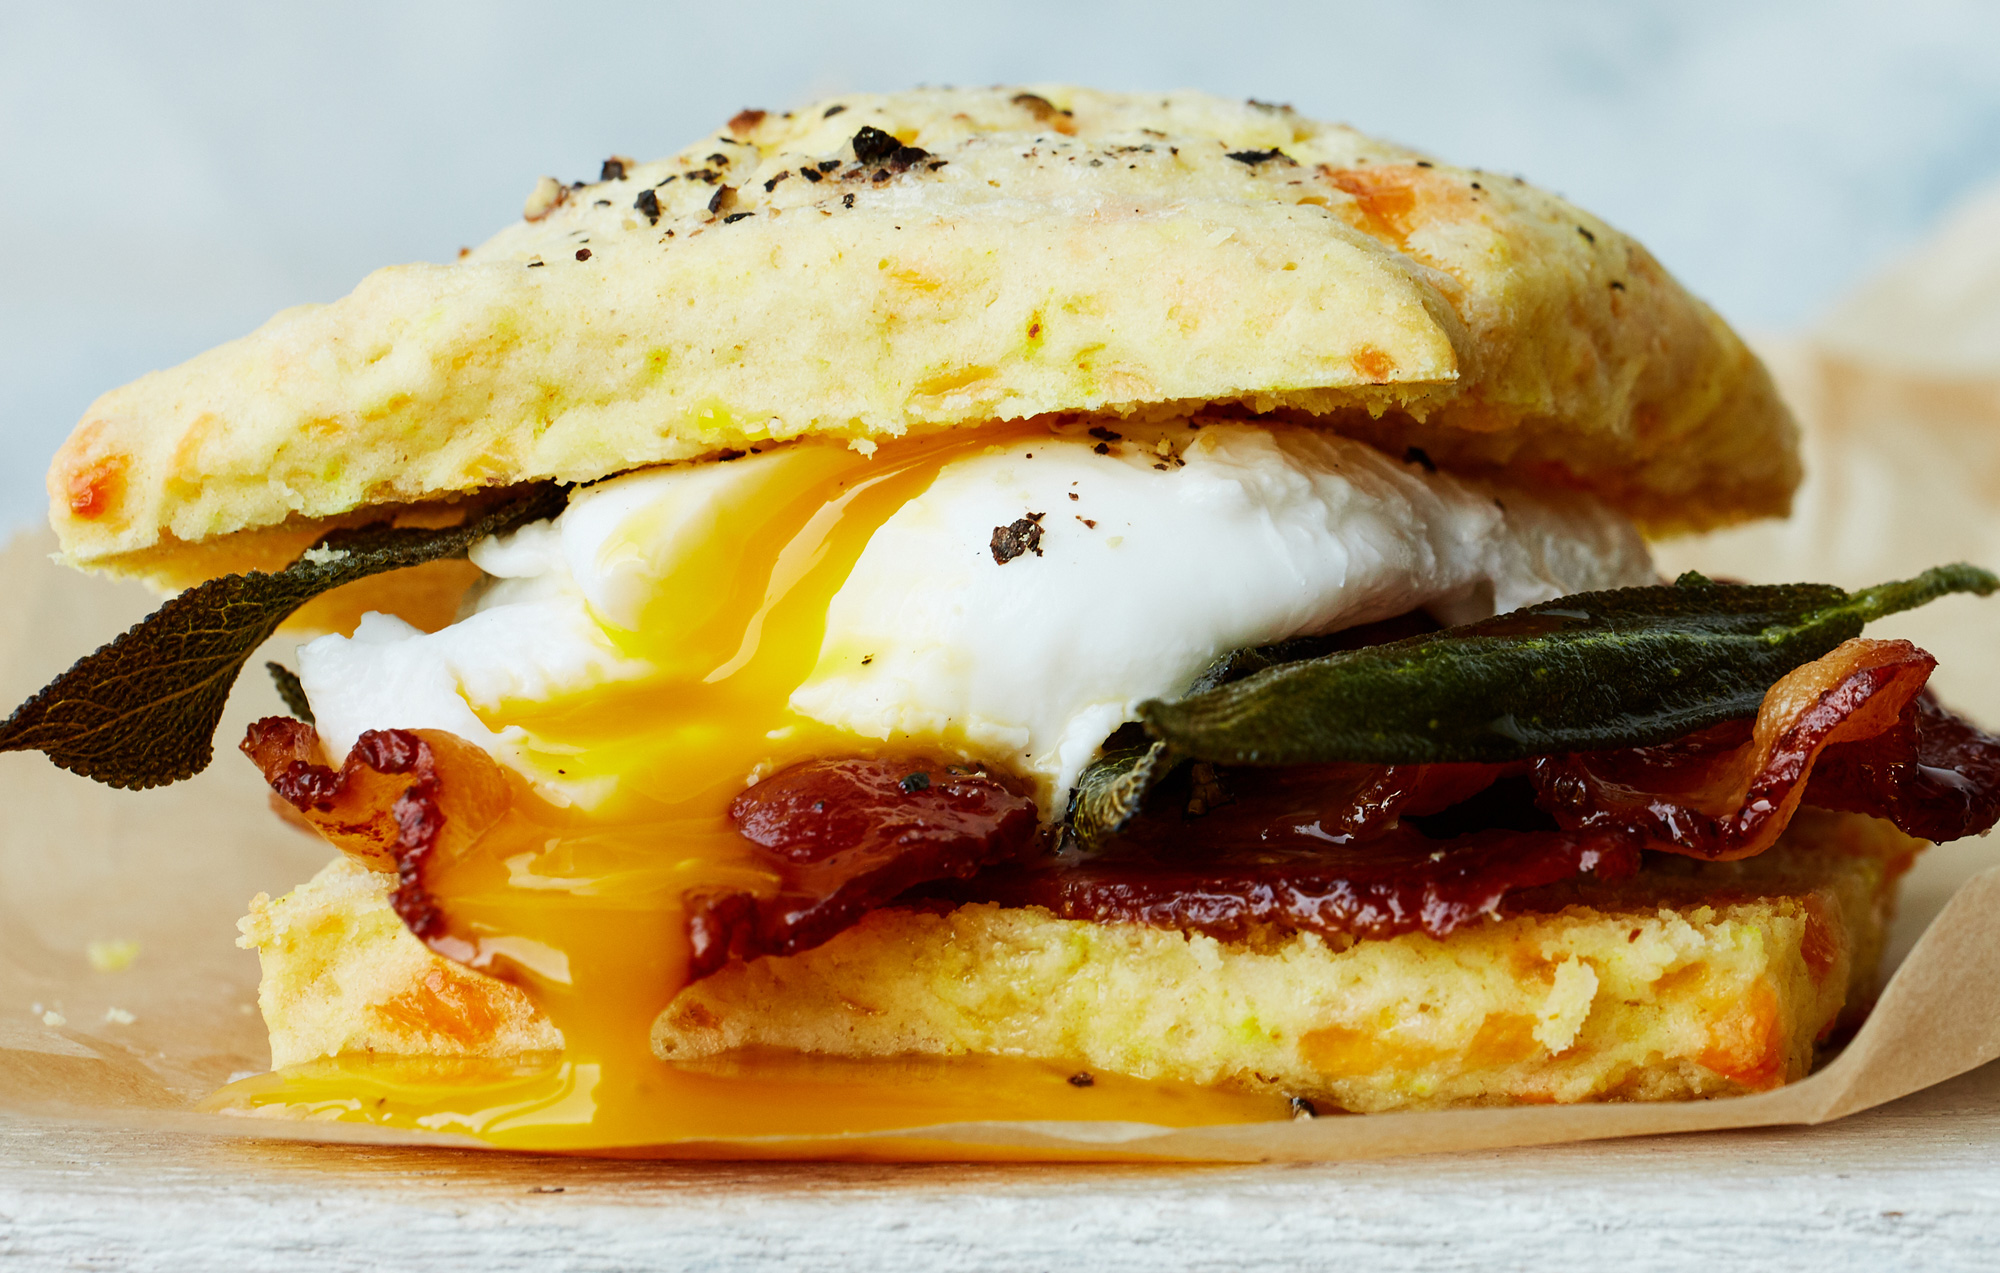 53_Poached_Egg_Cheddar_Biscuit_Bacon_Sage_J_Miller_1265